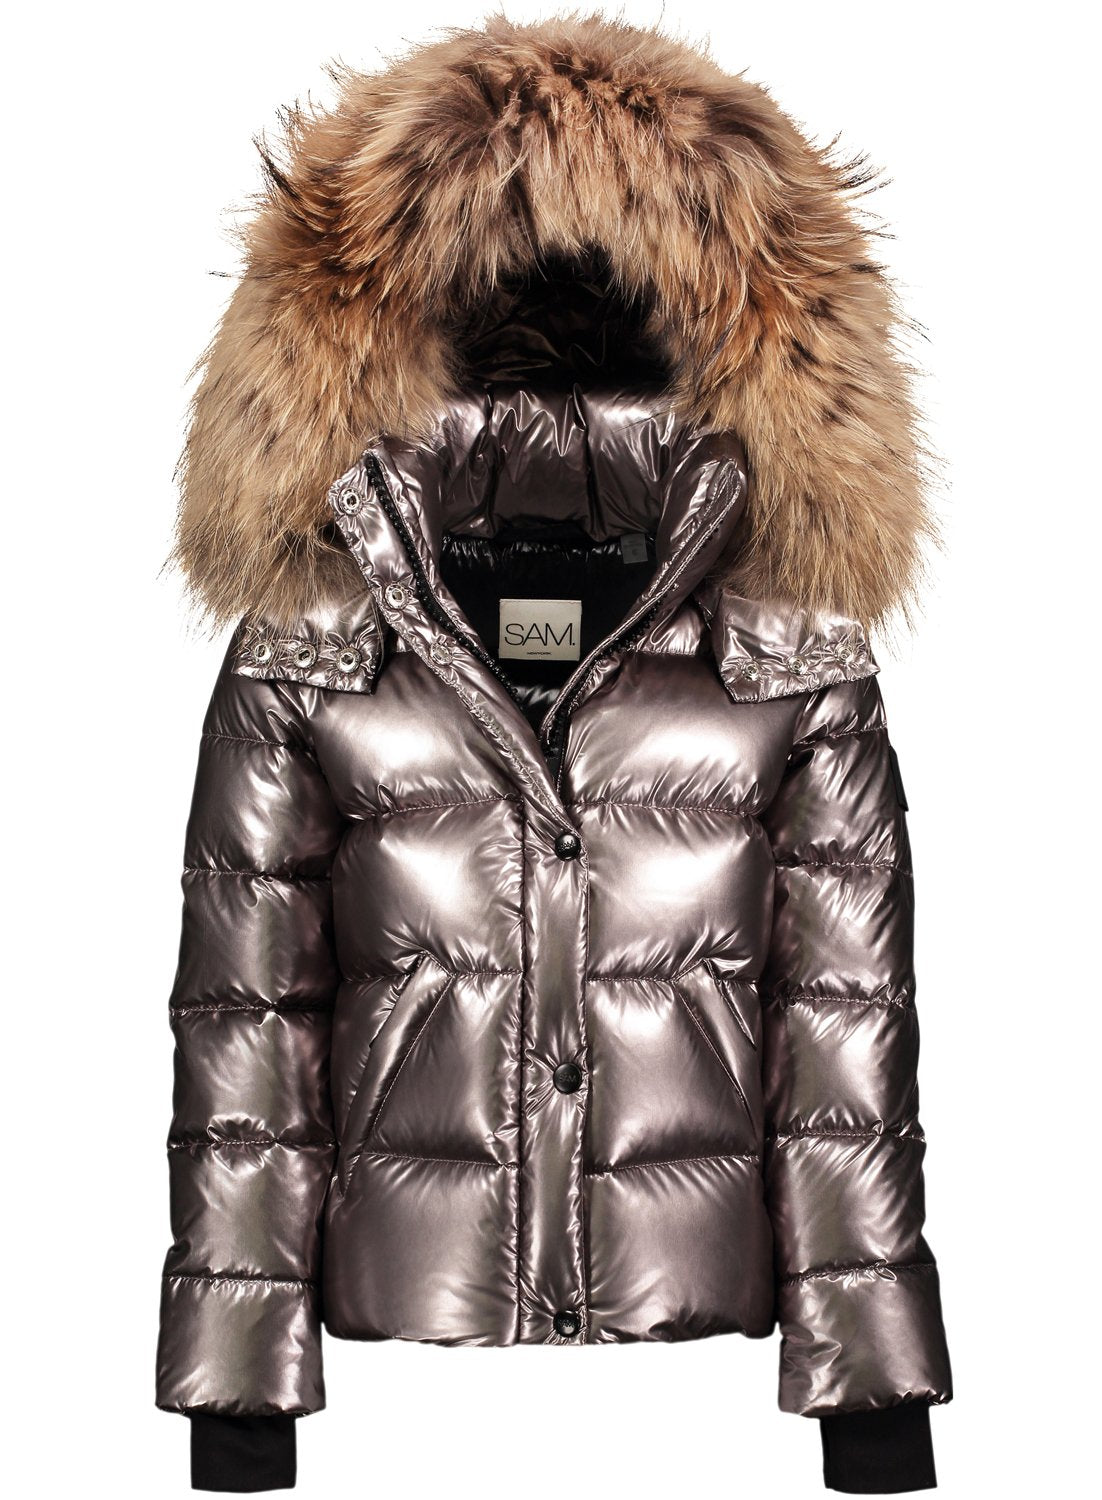 GIRLS FUR ANNABELLE GIRLS FUR ANNABELLE - SAM. New York Sam nyc jacket